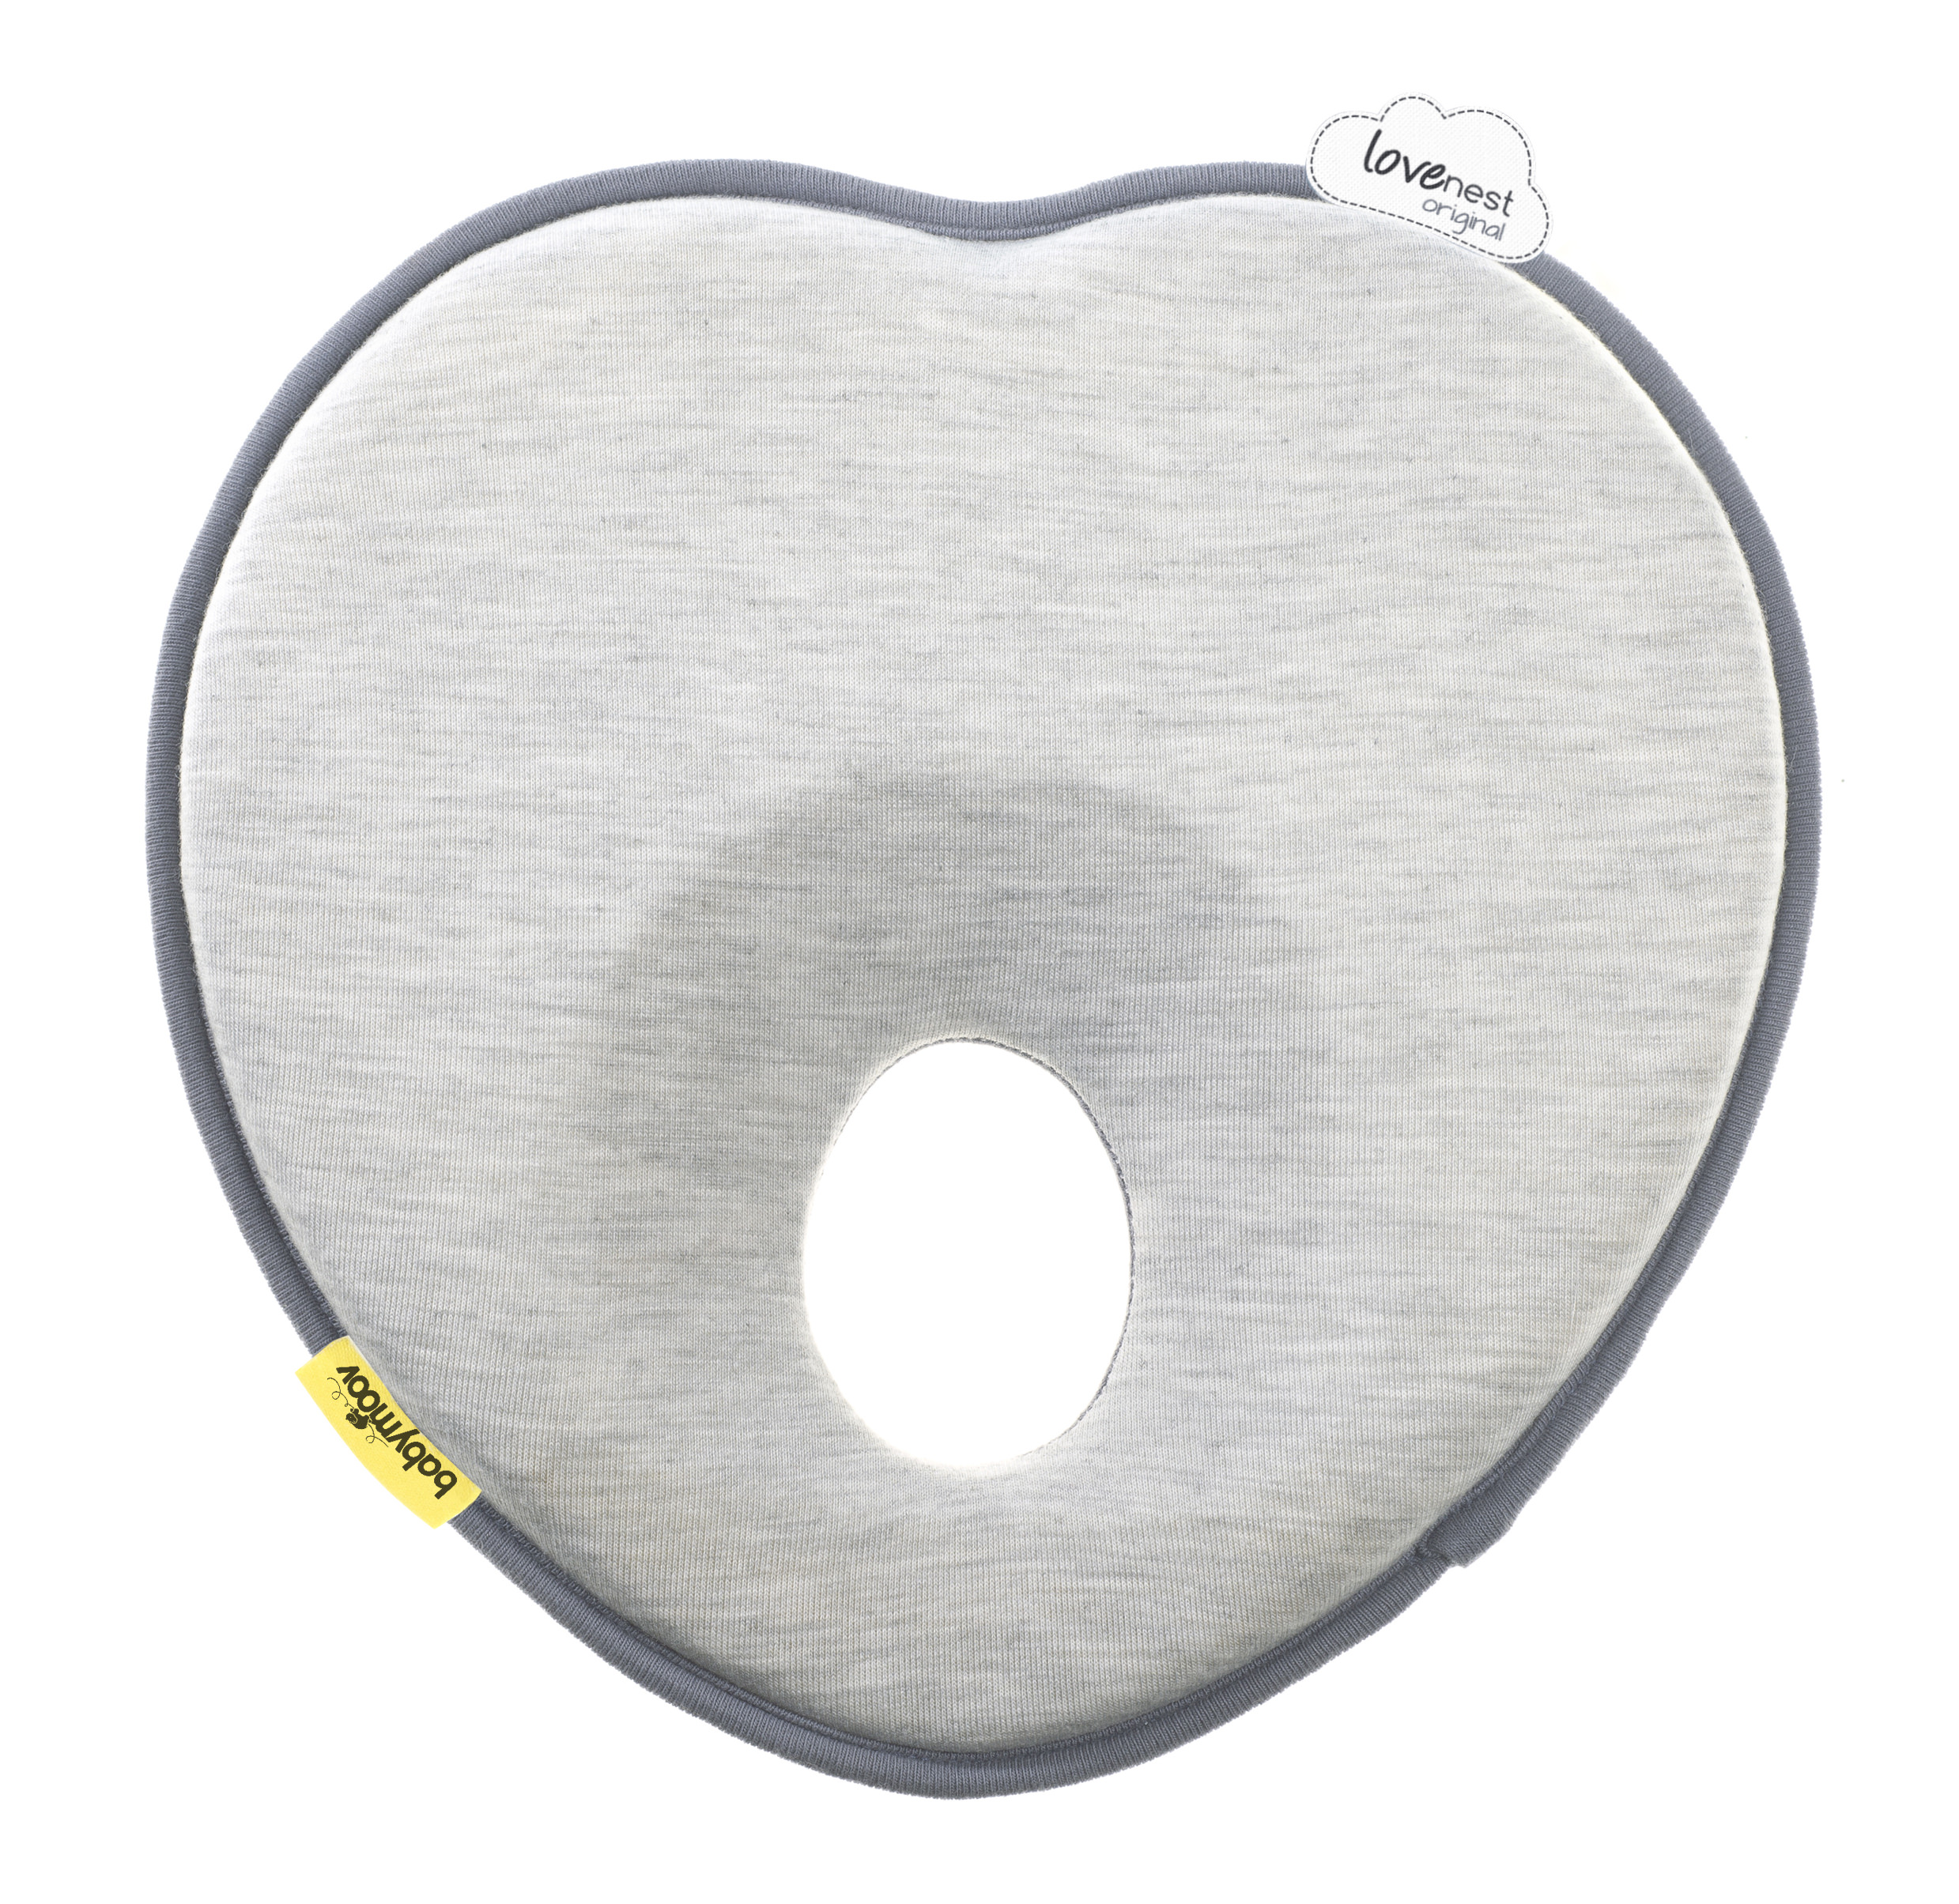 Babymoov Lovenest � Patented Pillow For Baby and Infant Head Support & Flat Head Syndrome Prevention (Smokey) by BABYMOOV